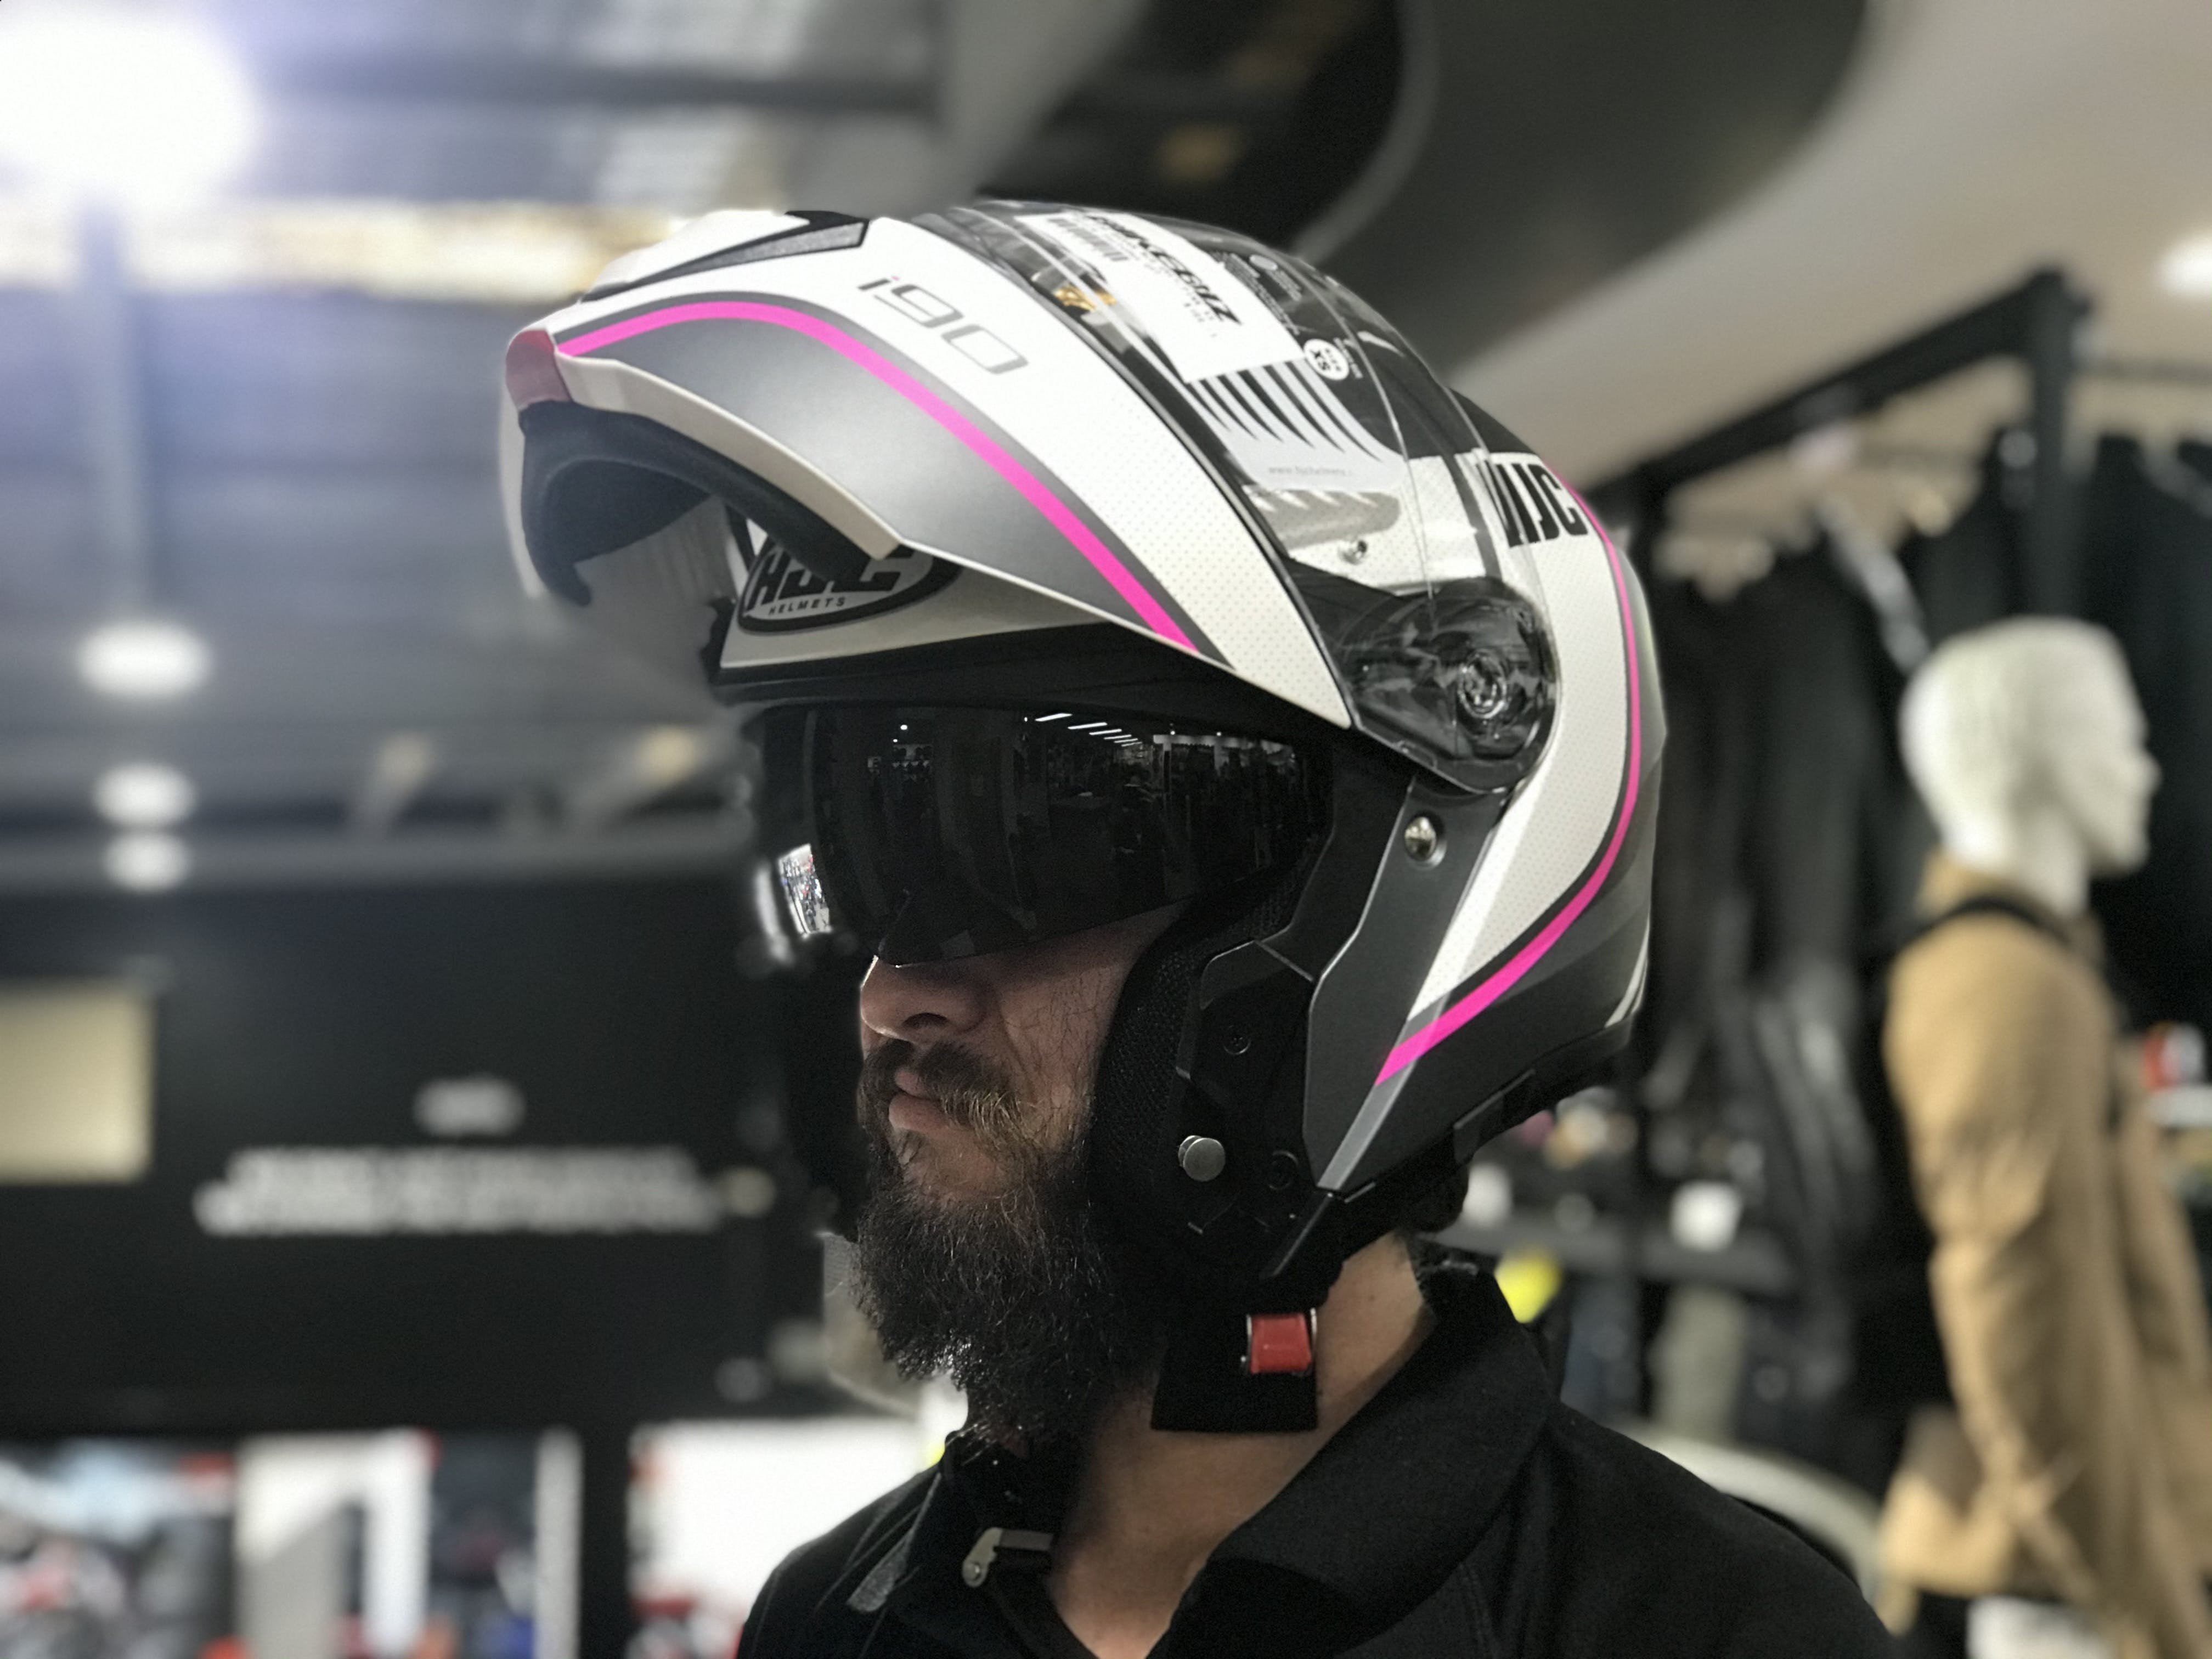 Andrew in a modular helmet white and pink